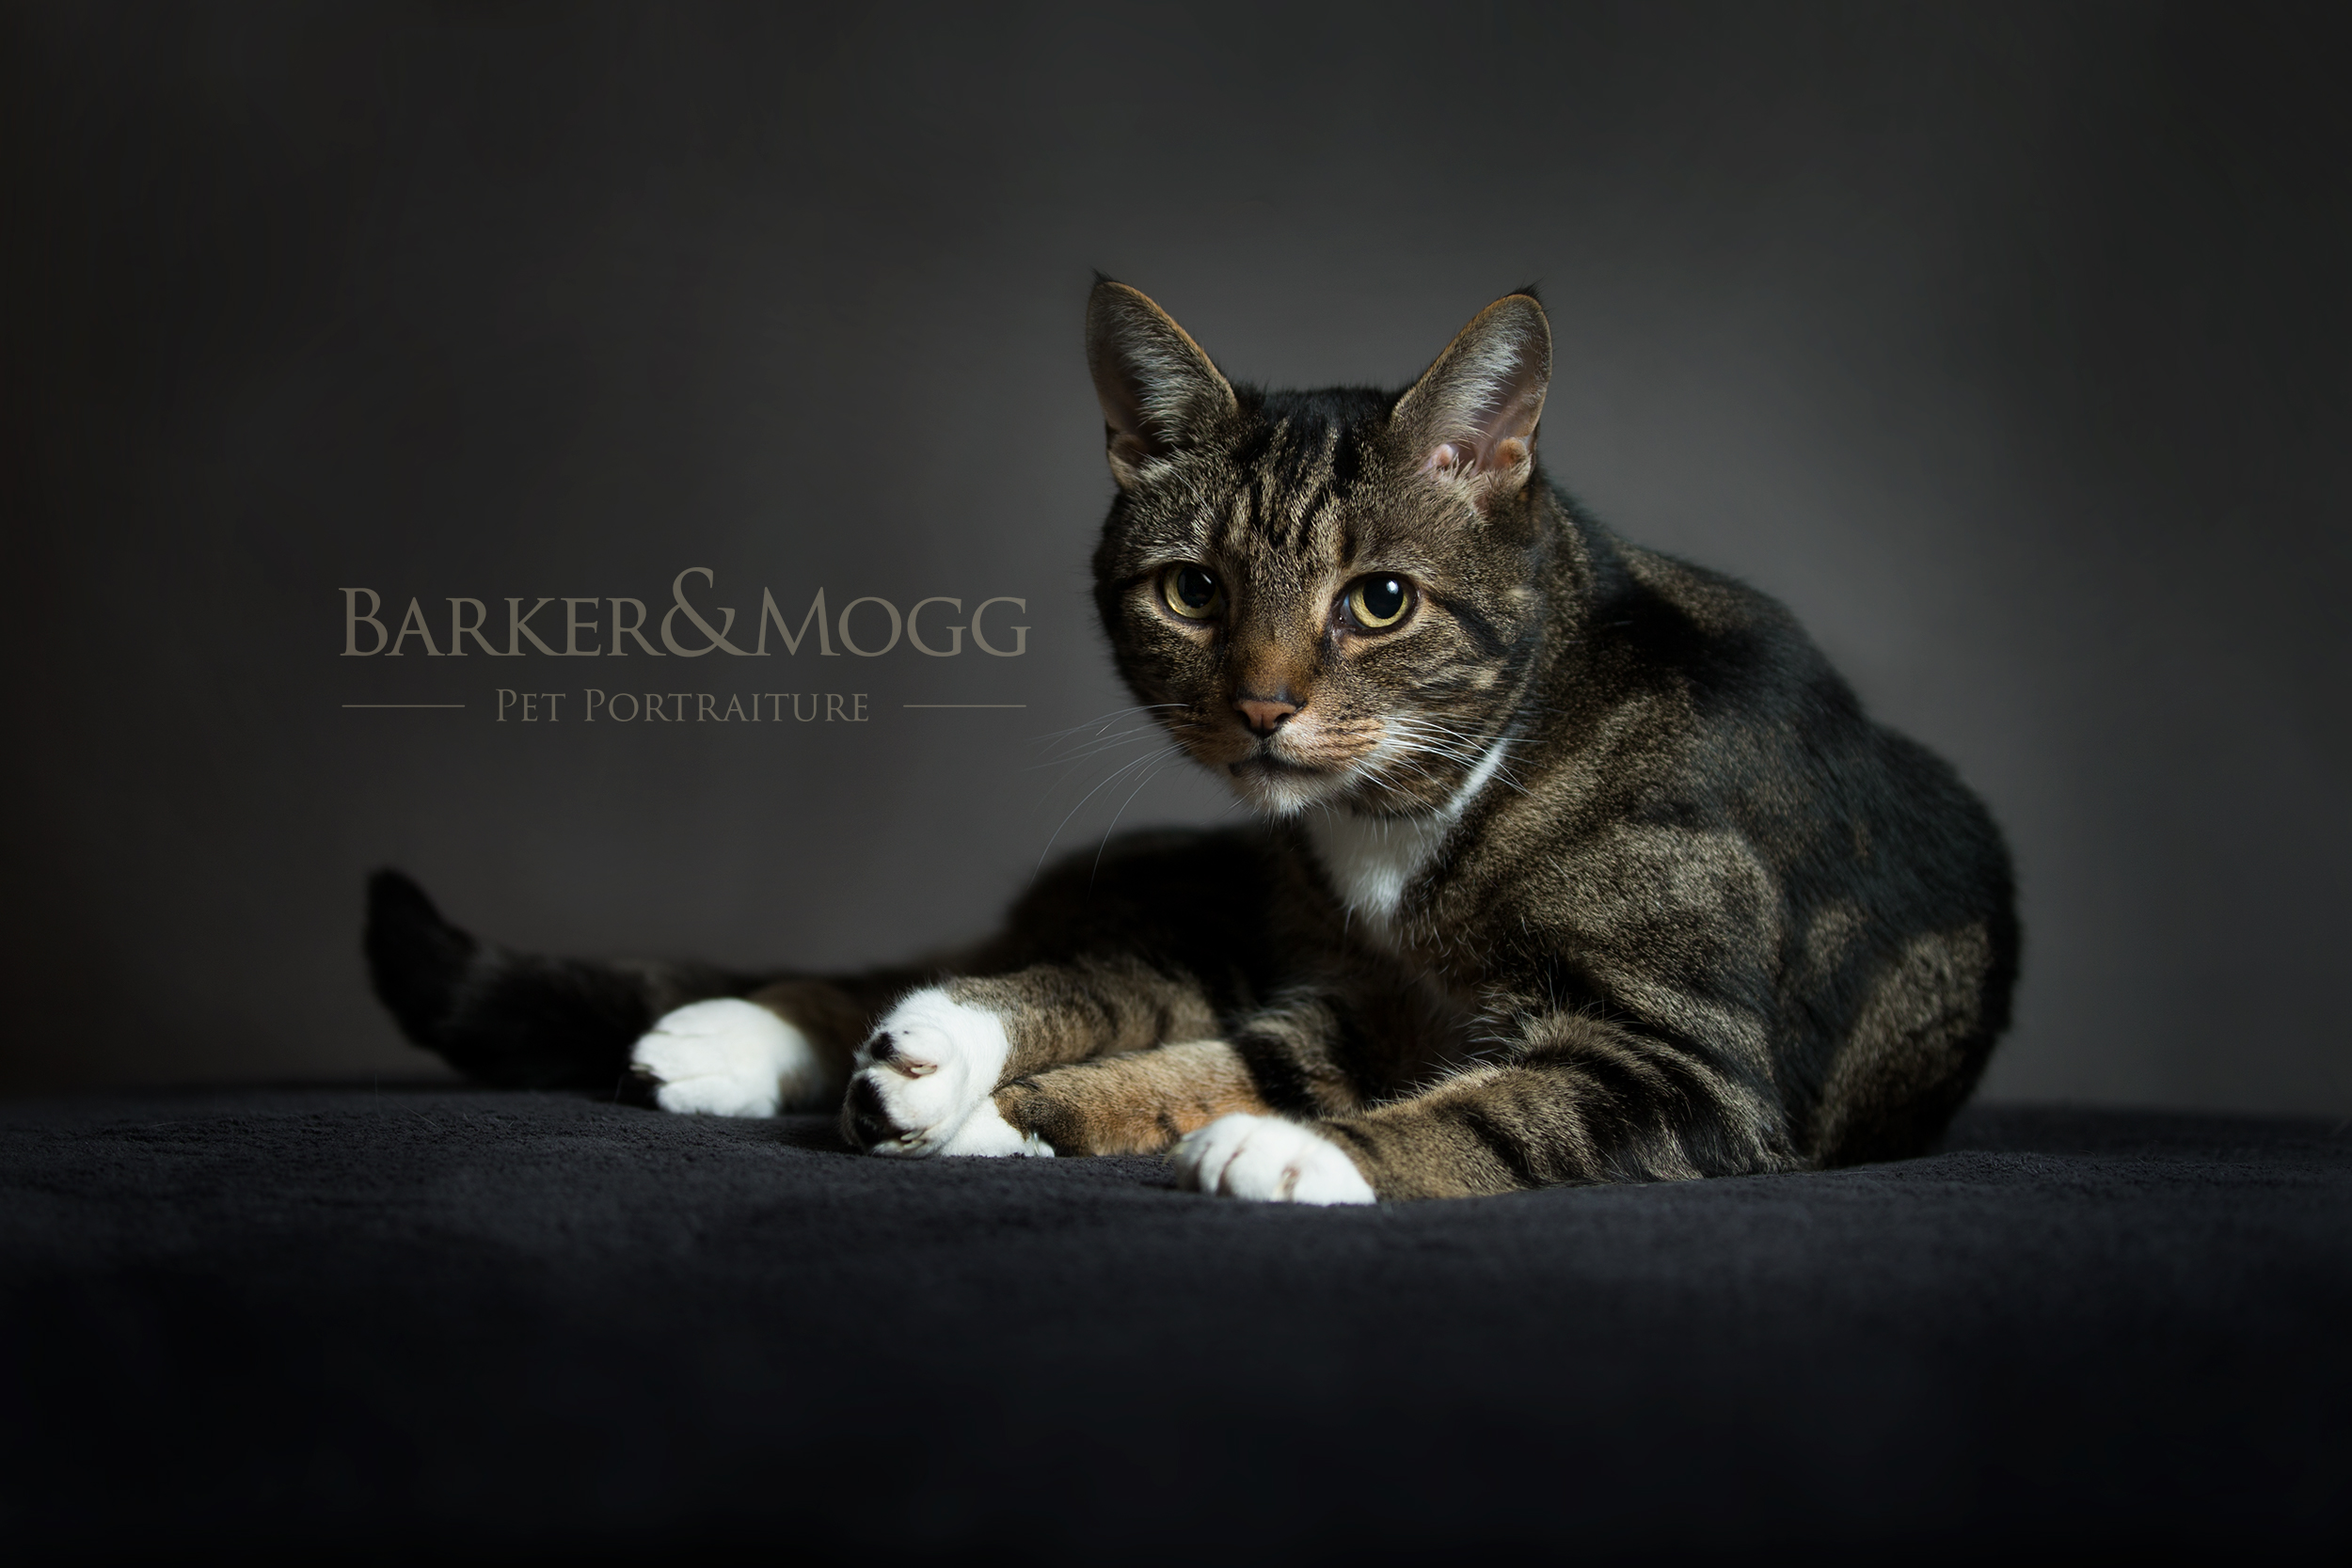 Studio Session £125 - • Barker&Mogg's timeless fine art styled photoshoot.• We come to you with our mobile studio and capture your pet relaxed in the comfort and security of their own home.• 1 - 2 hour session.• Five Professionally edited photographs. • Provided via digital download.*